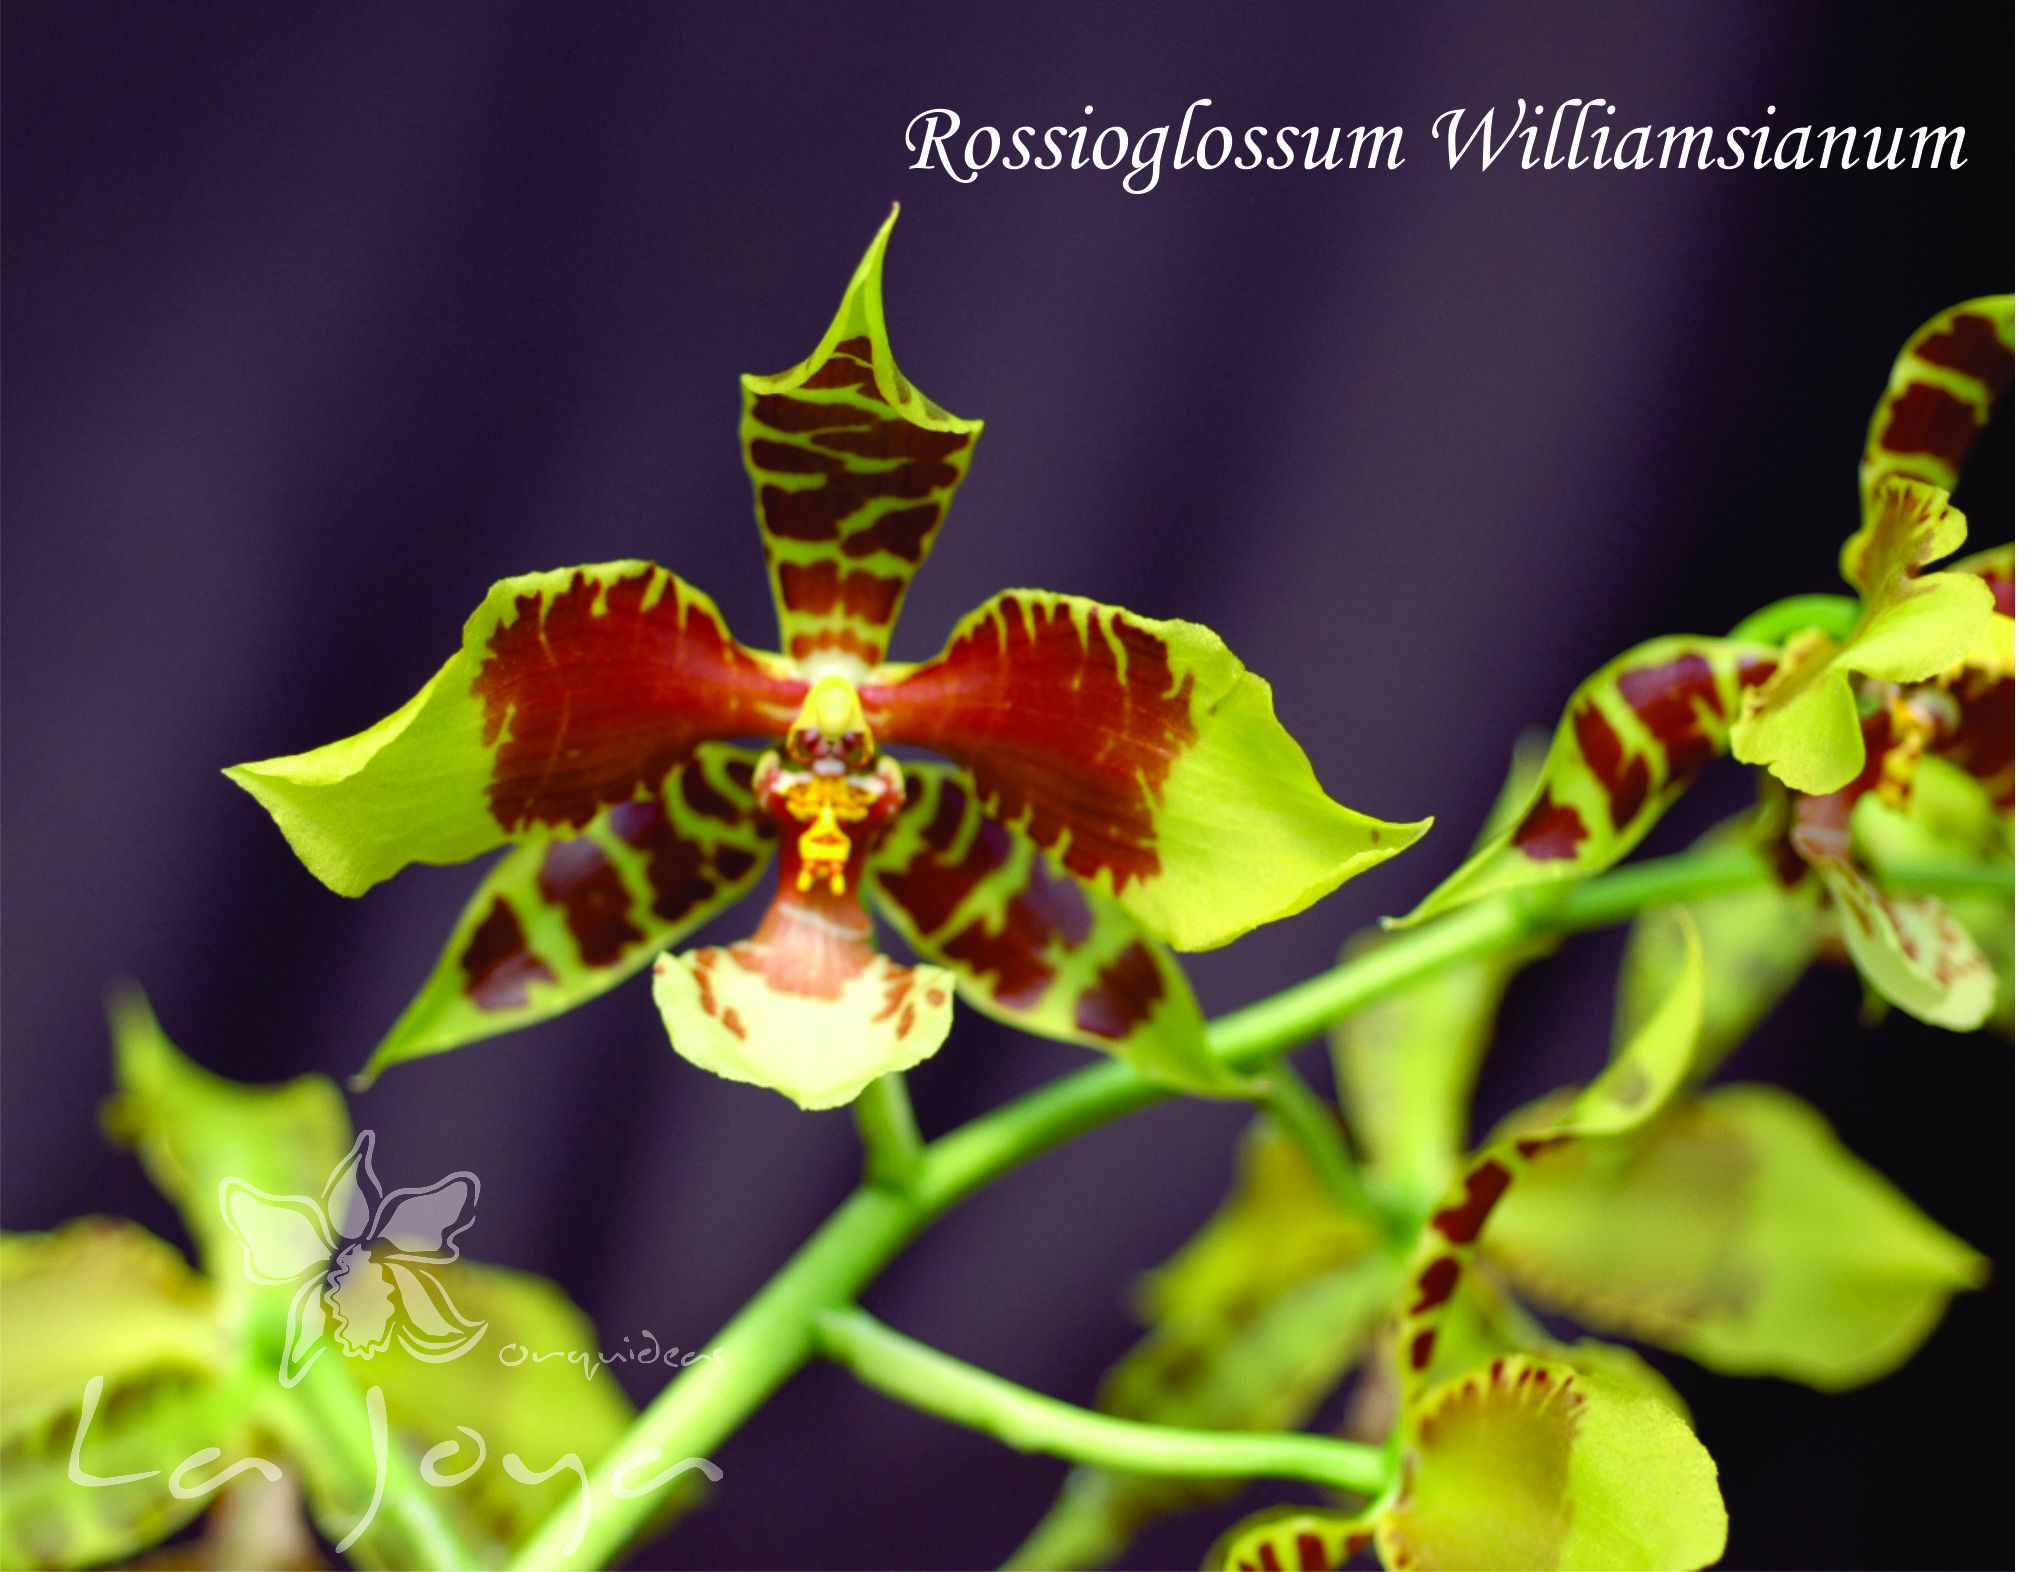 Rossiglossum Williamsianum